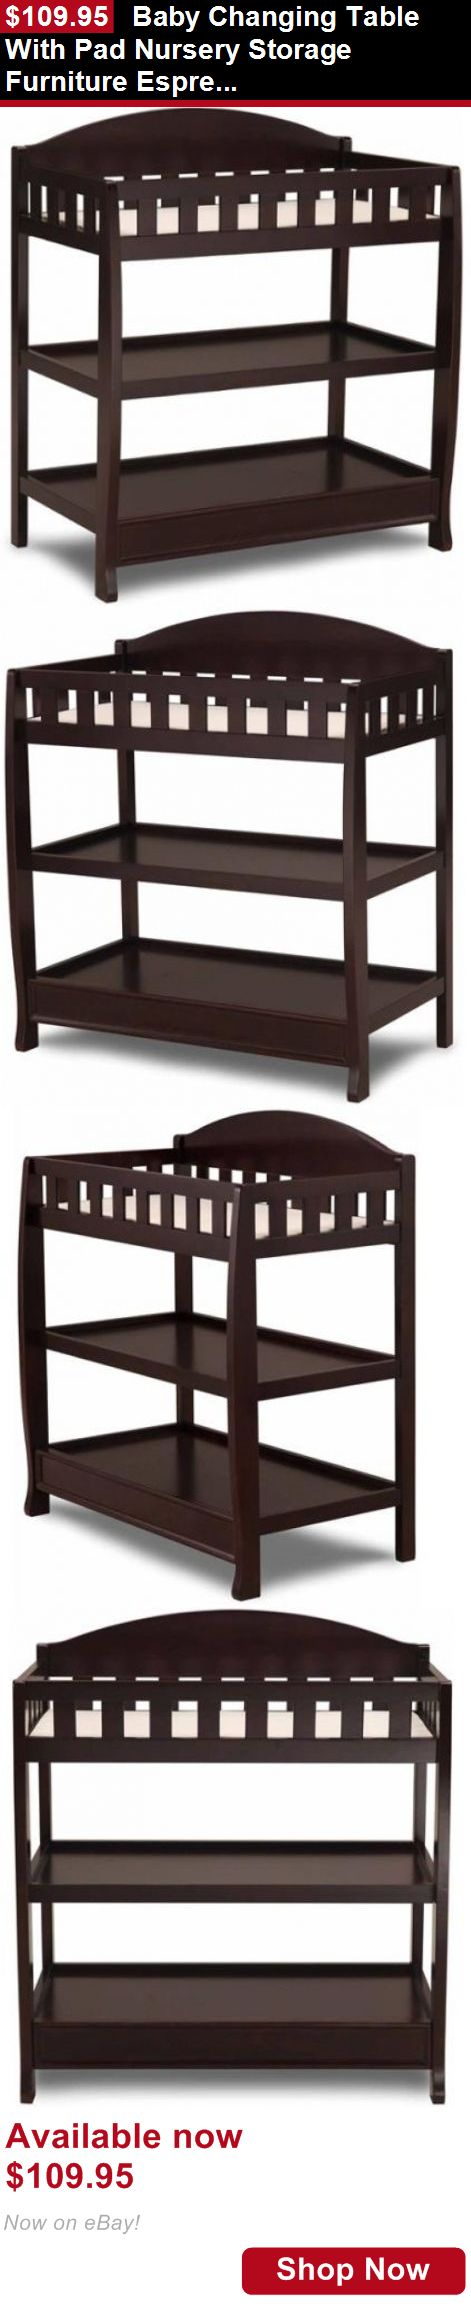 Changing Tables: Baby Changing Table With Pad Nursery Storage Furniture Espresso Infant Station BUY IT NOW ONLY: $109.95